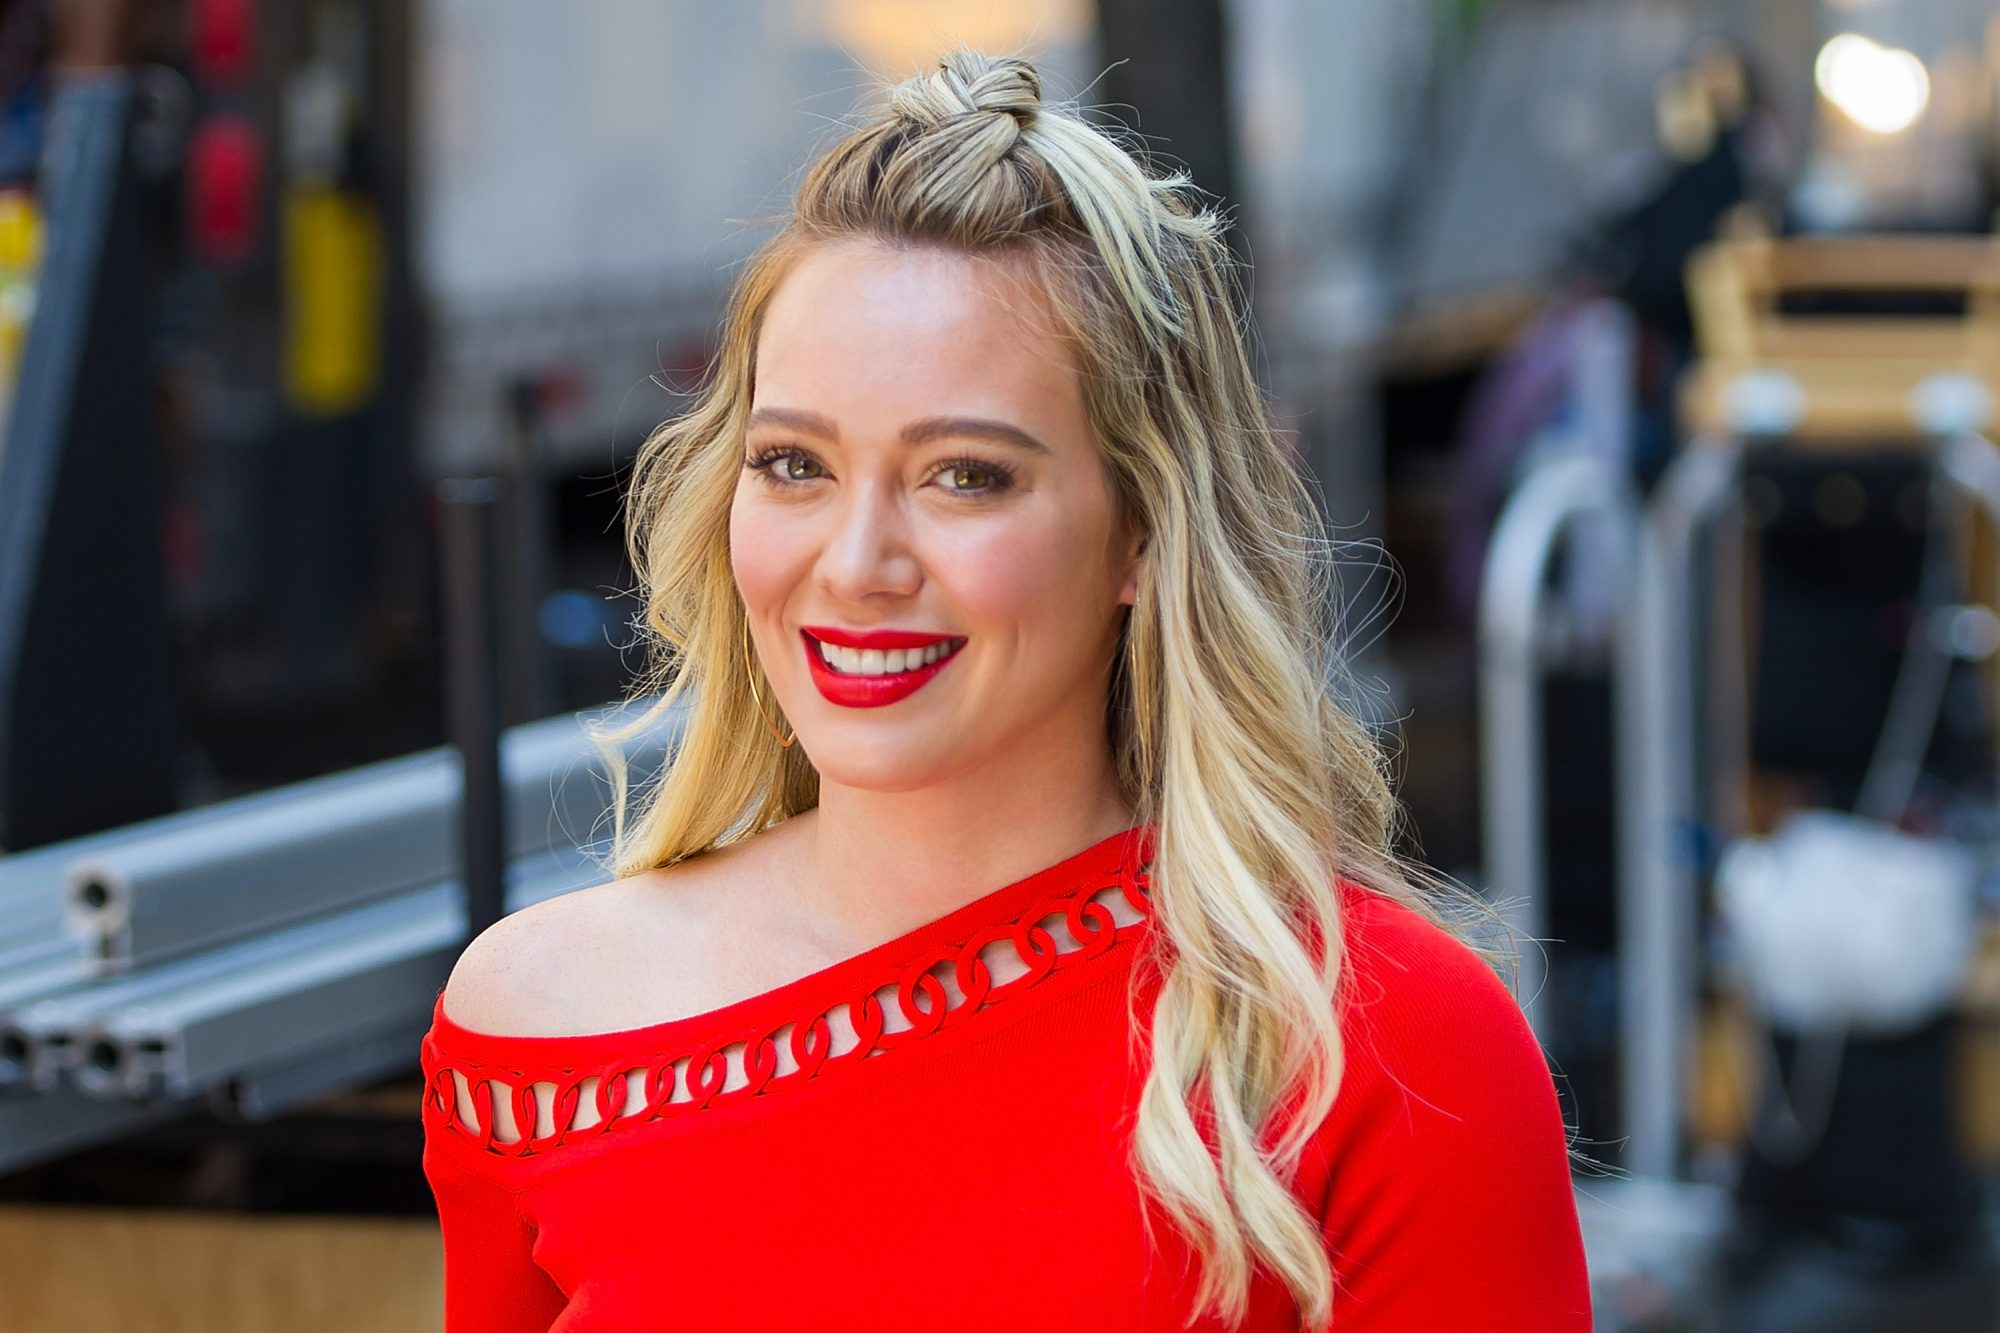 MR-Hilary Duff